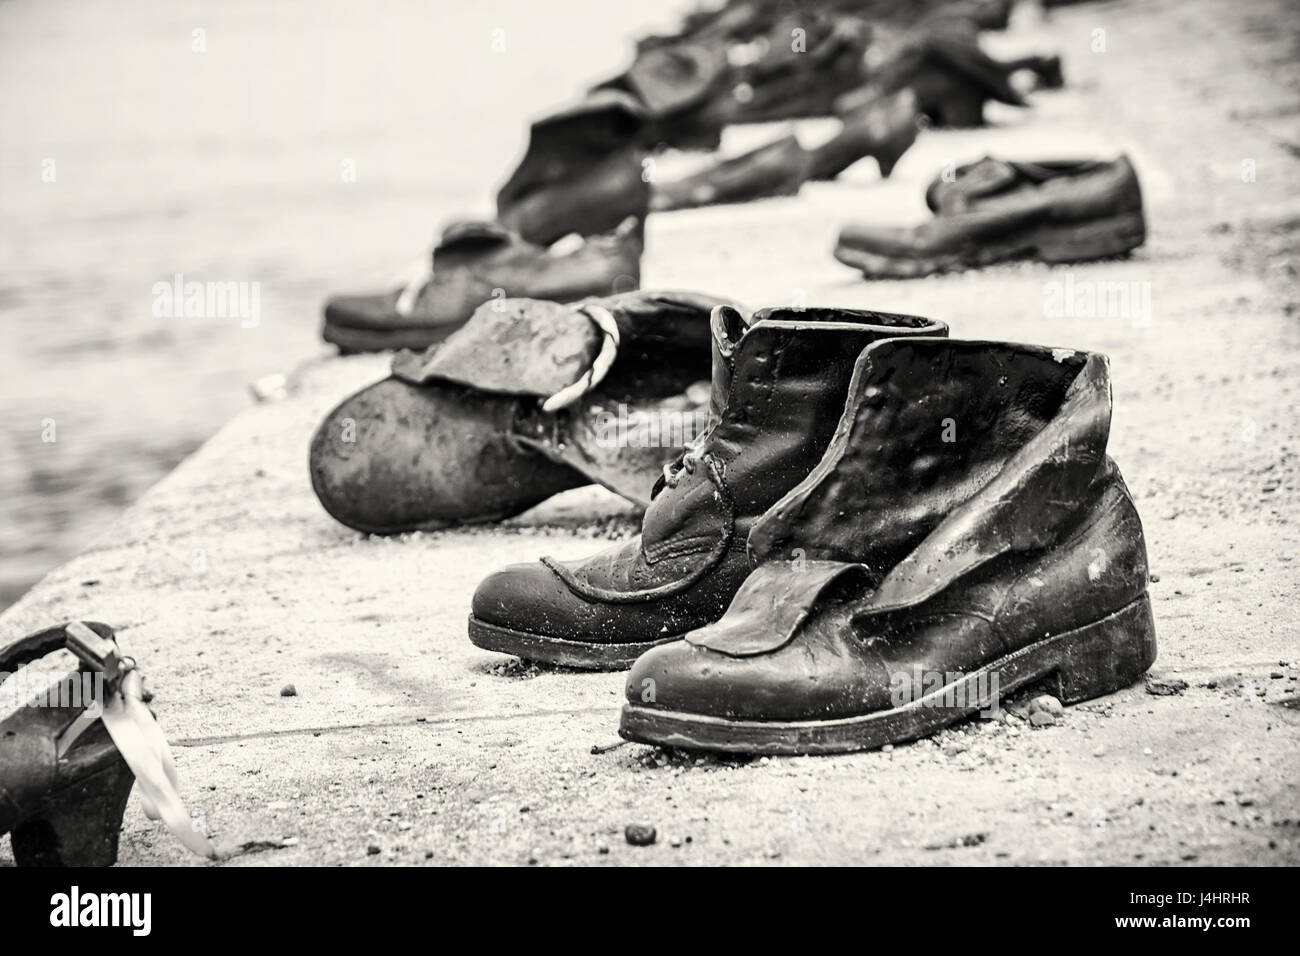 Shoes monument on the Danube bank is a memorial in Budapest, Hungary. Place of reverence. Black and white photo. - Stock Image